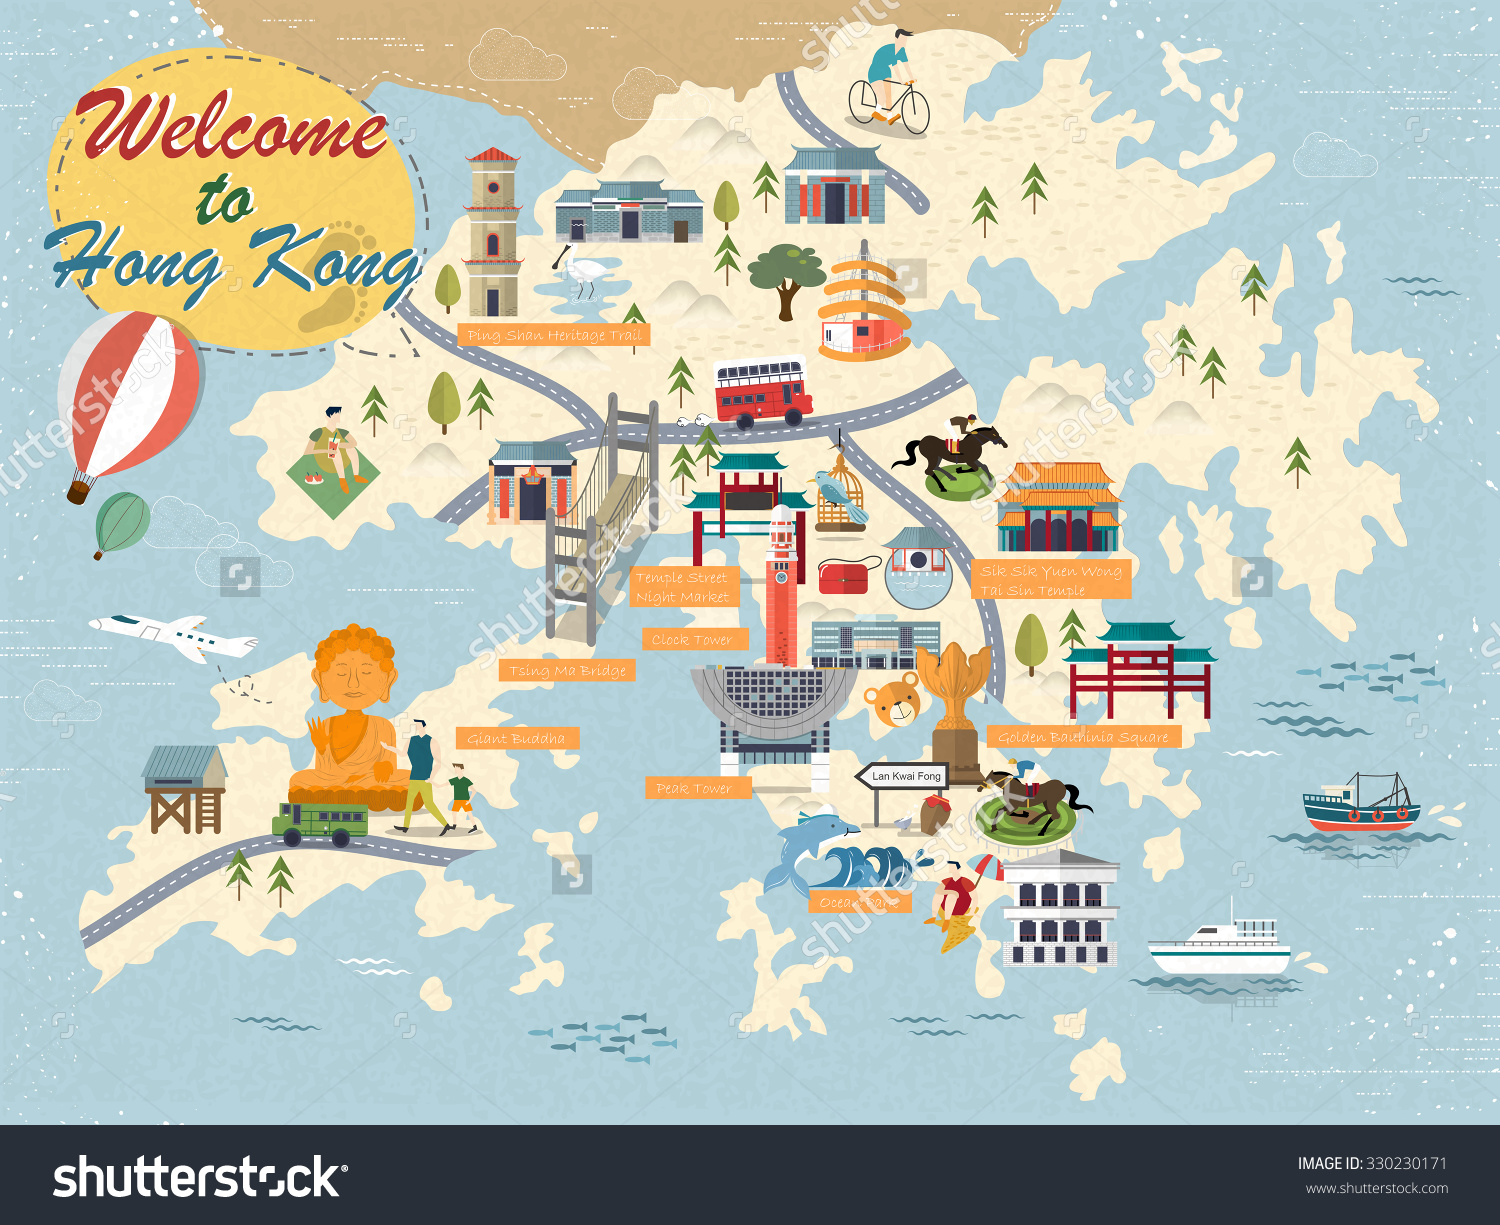 Stock Photo Attractive Hong Kong Travel Map With Attractions Icons In Flat Design